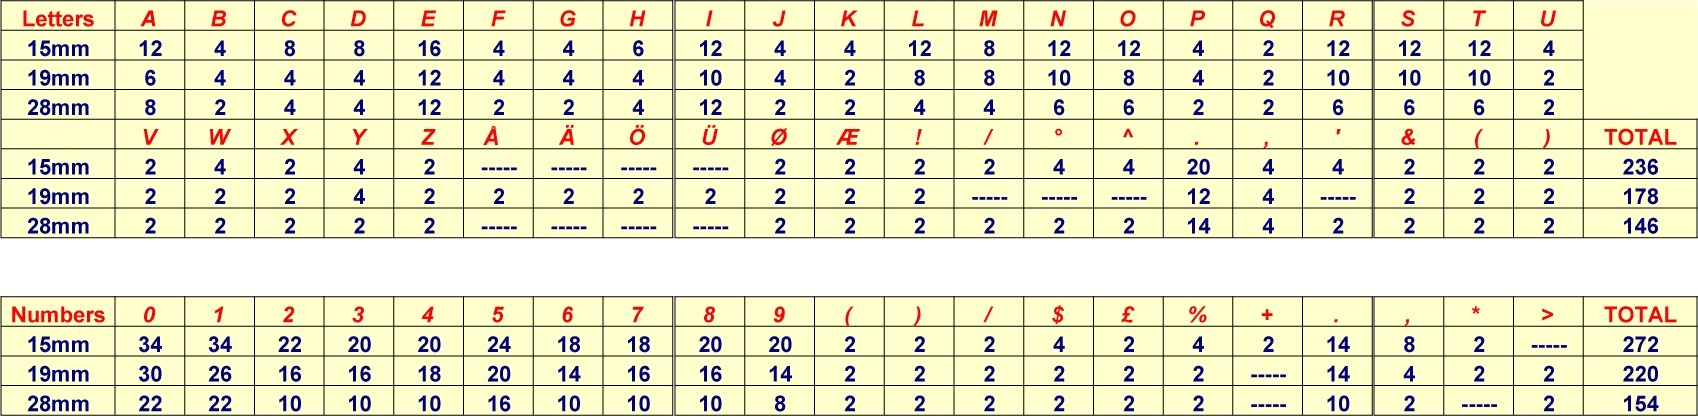 Letter and Number Sets spreadsheet